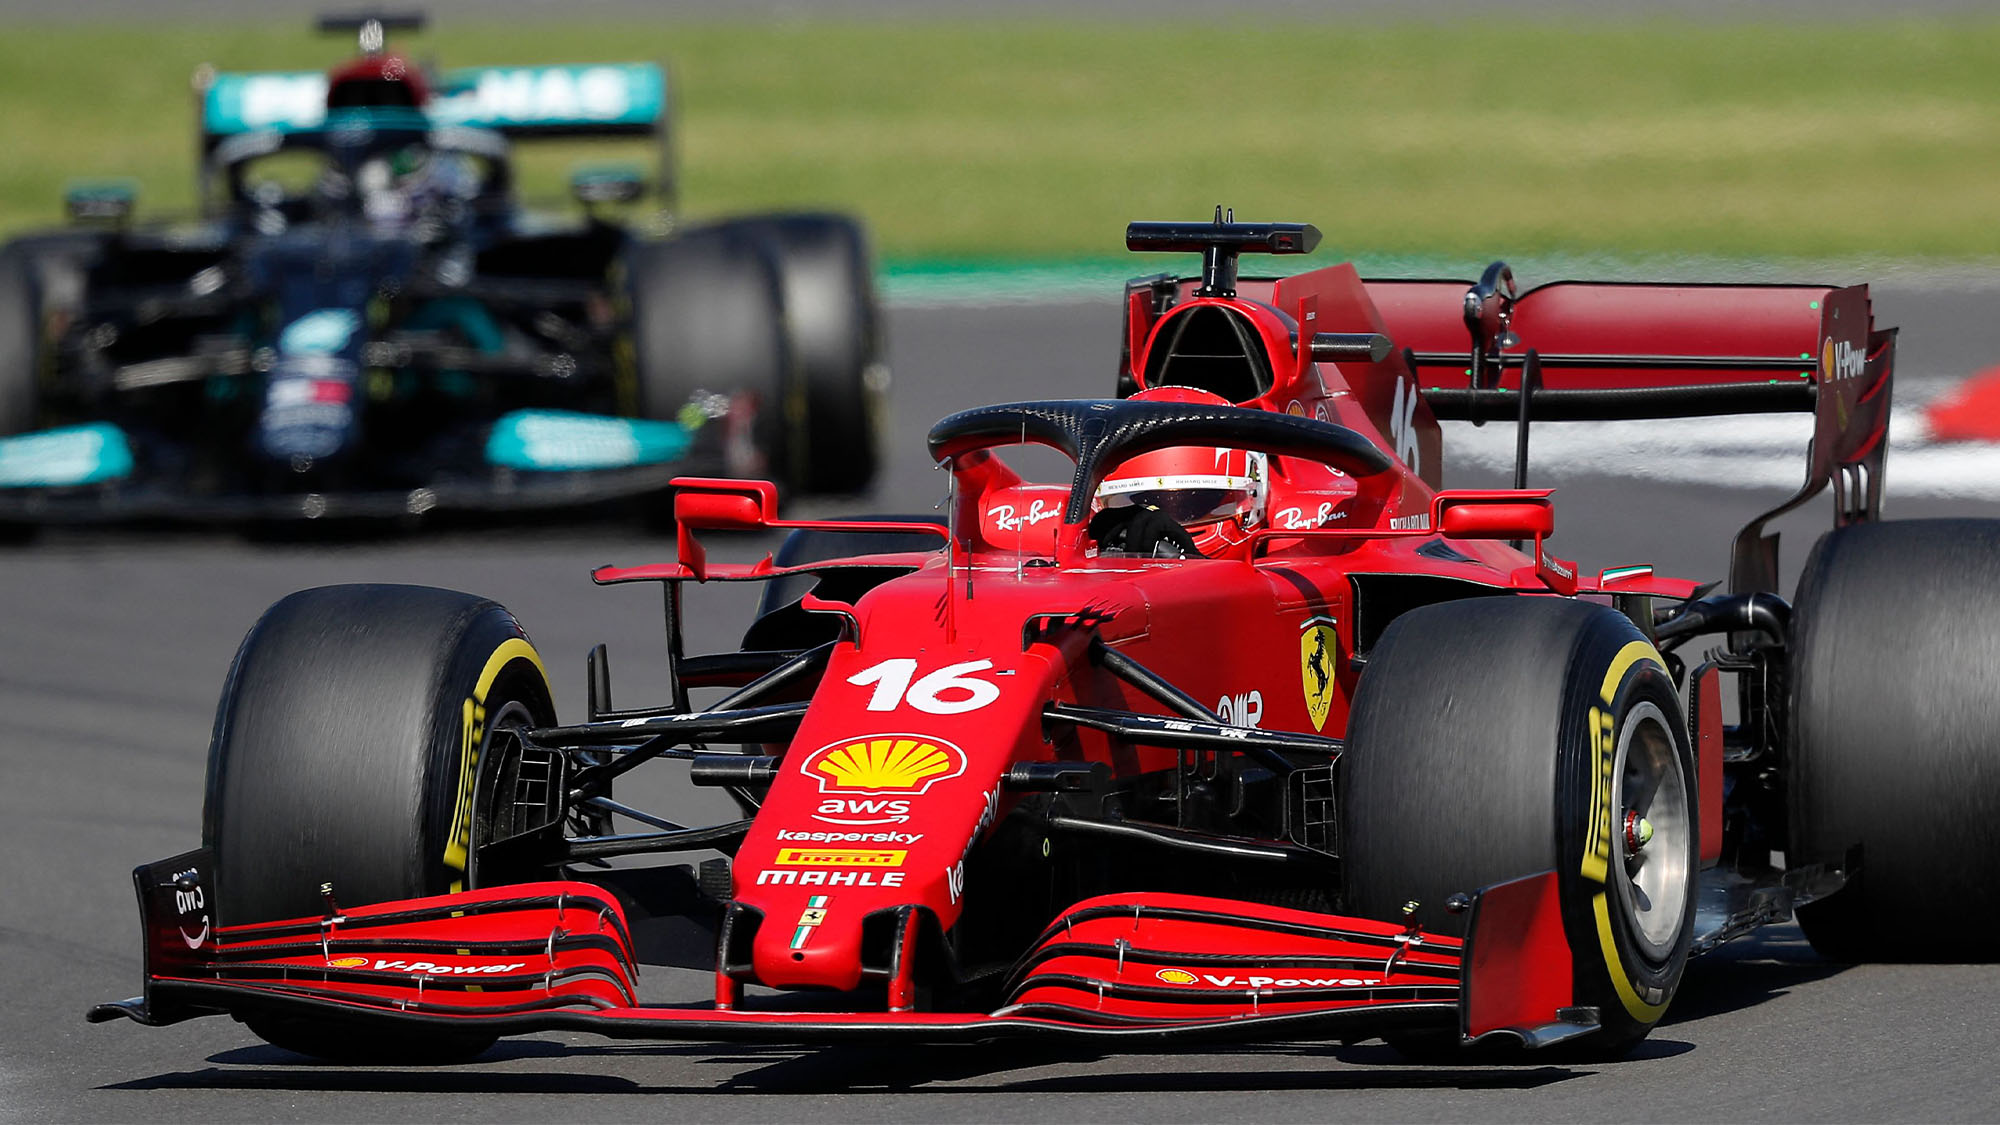 Mercedes' British driver Lewis Hamilton (L) and Ferrari's Monegasque driver Charles Leclerc (R) drive during the Formula One British Grand Prix motor race at Silverstone motor racing circuit in Silverstone, central England on July 18, 2021. (Photo by Adrian DENNIS / AFP) (Photo by ADRIAN DENNIS/AFP via Getty Images)